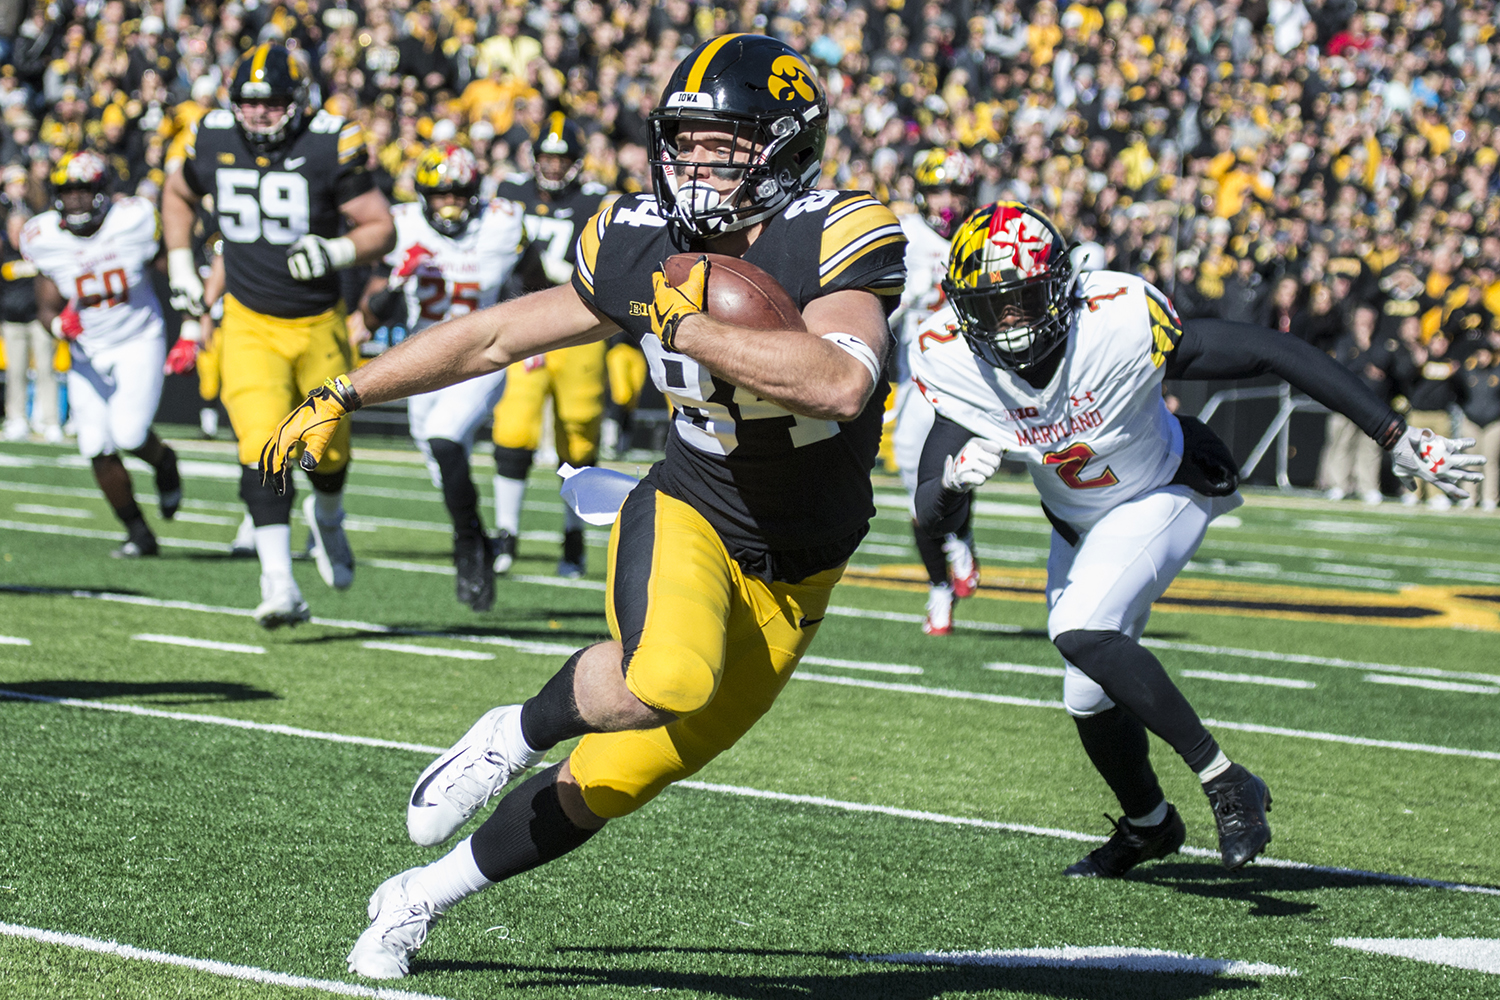 Iowa+wide+receiver+Nick+Easley+navigates+the+defense+during+a+football+game+between+Iowa+and+Maryland+in+Kinnick+Stadium+on+Saturday%2C+October+20%2C+2018.+The+Hawkeyes+defeated+the+Terrapins%2C+23-0.+